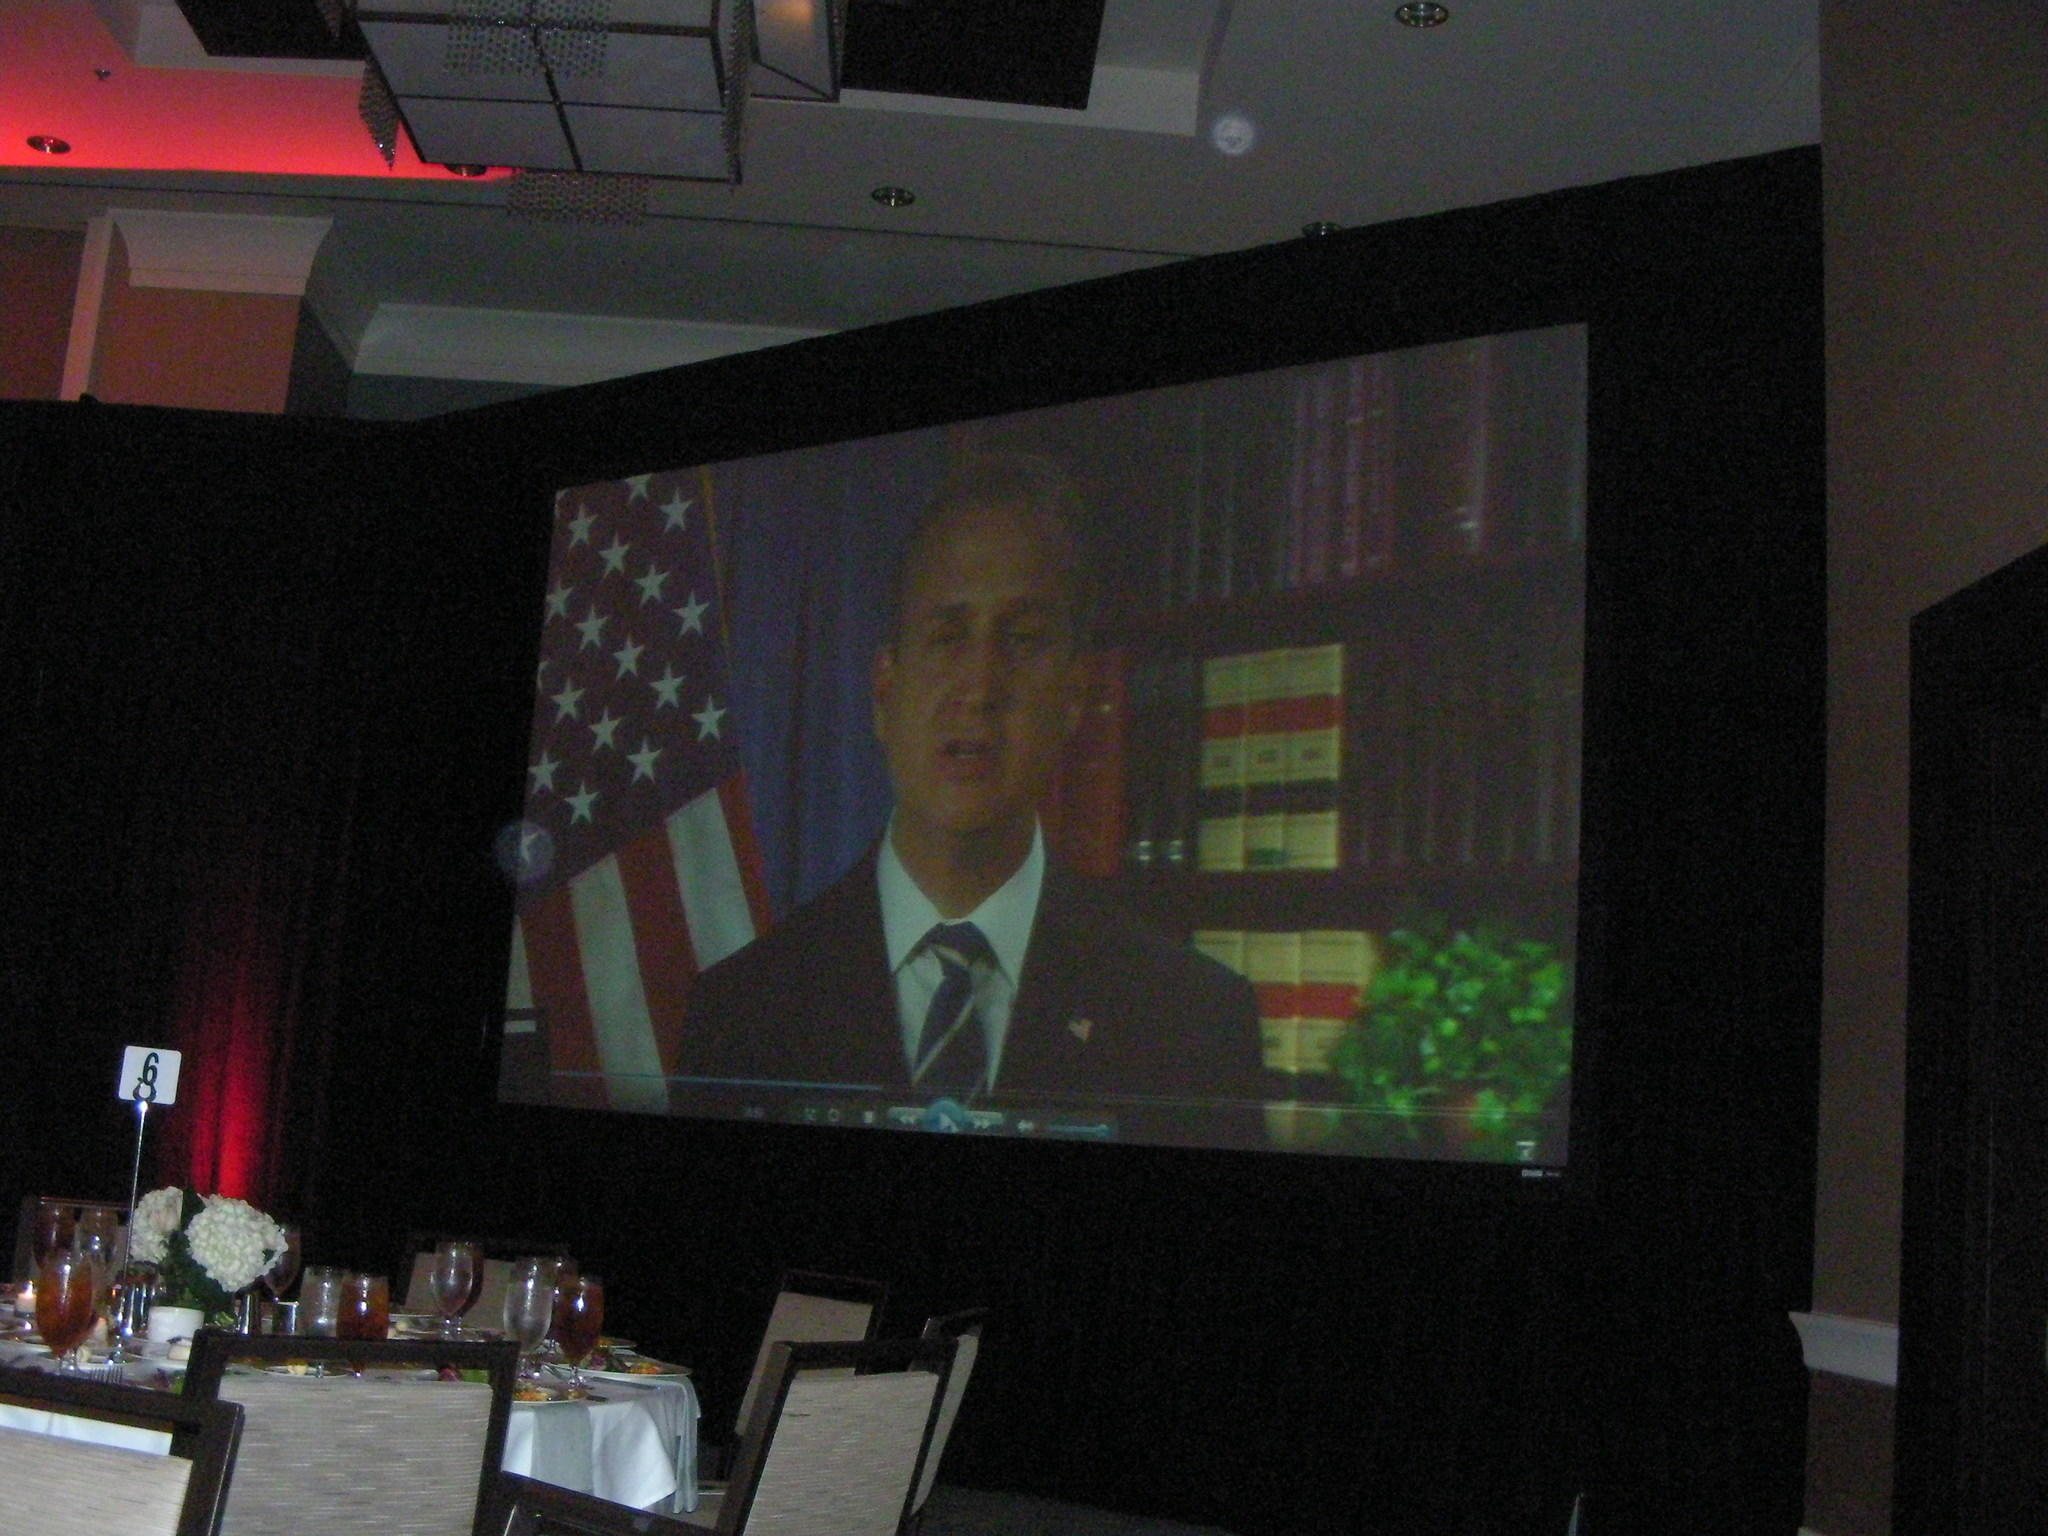 U.S. Rep. Mario Diaz-Balart, a Miami Republican who represents part of South Broward, appears via video.